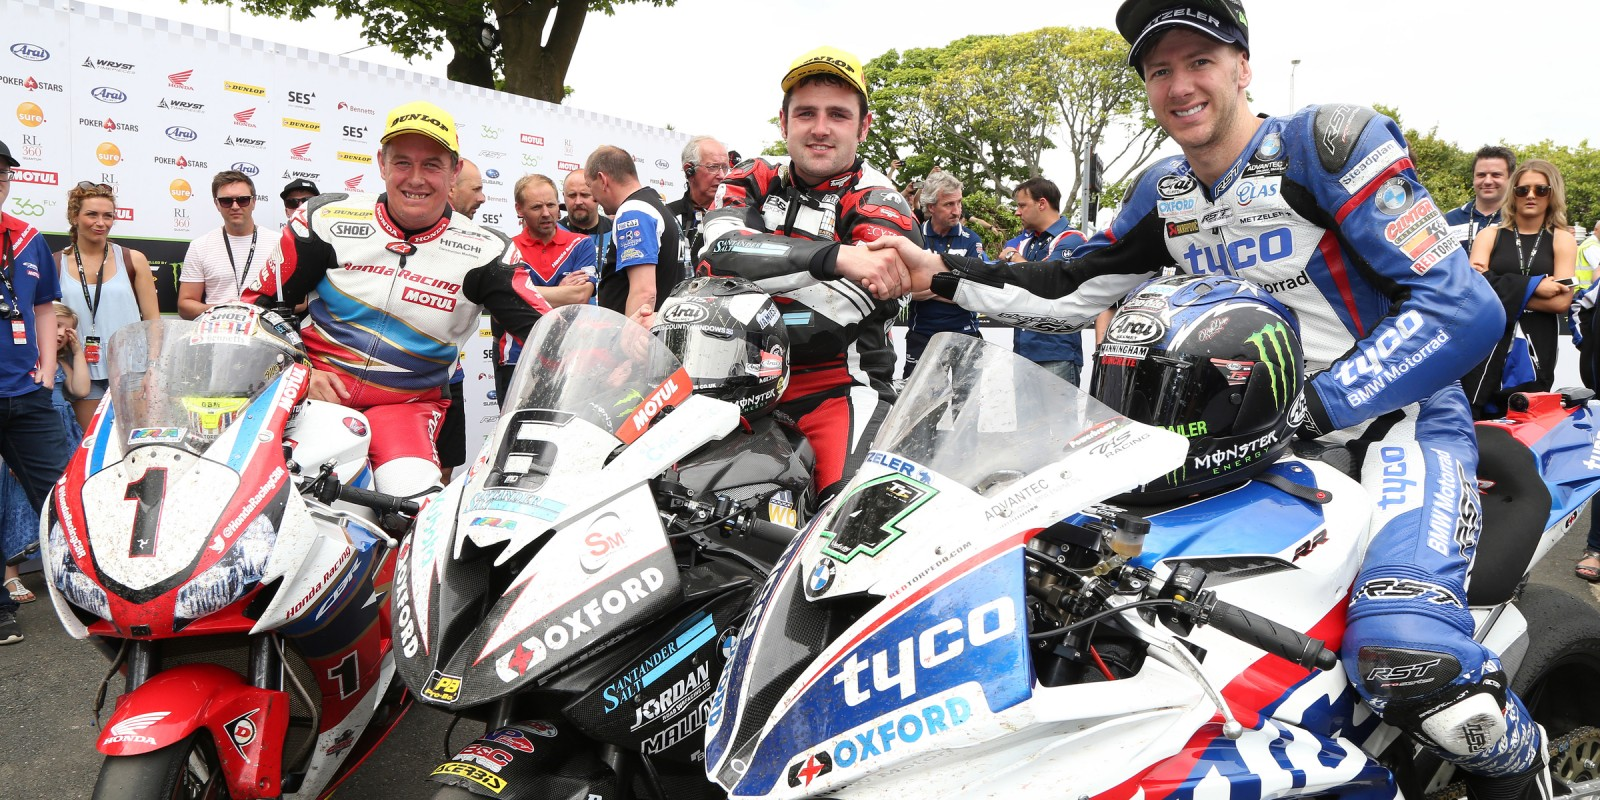 Images from race week at the 2016 Isle of Man TT